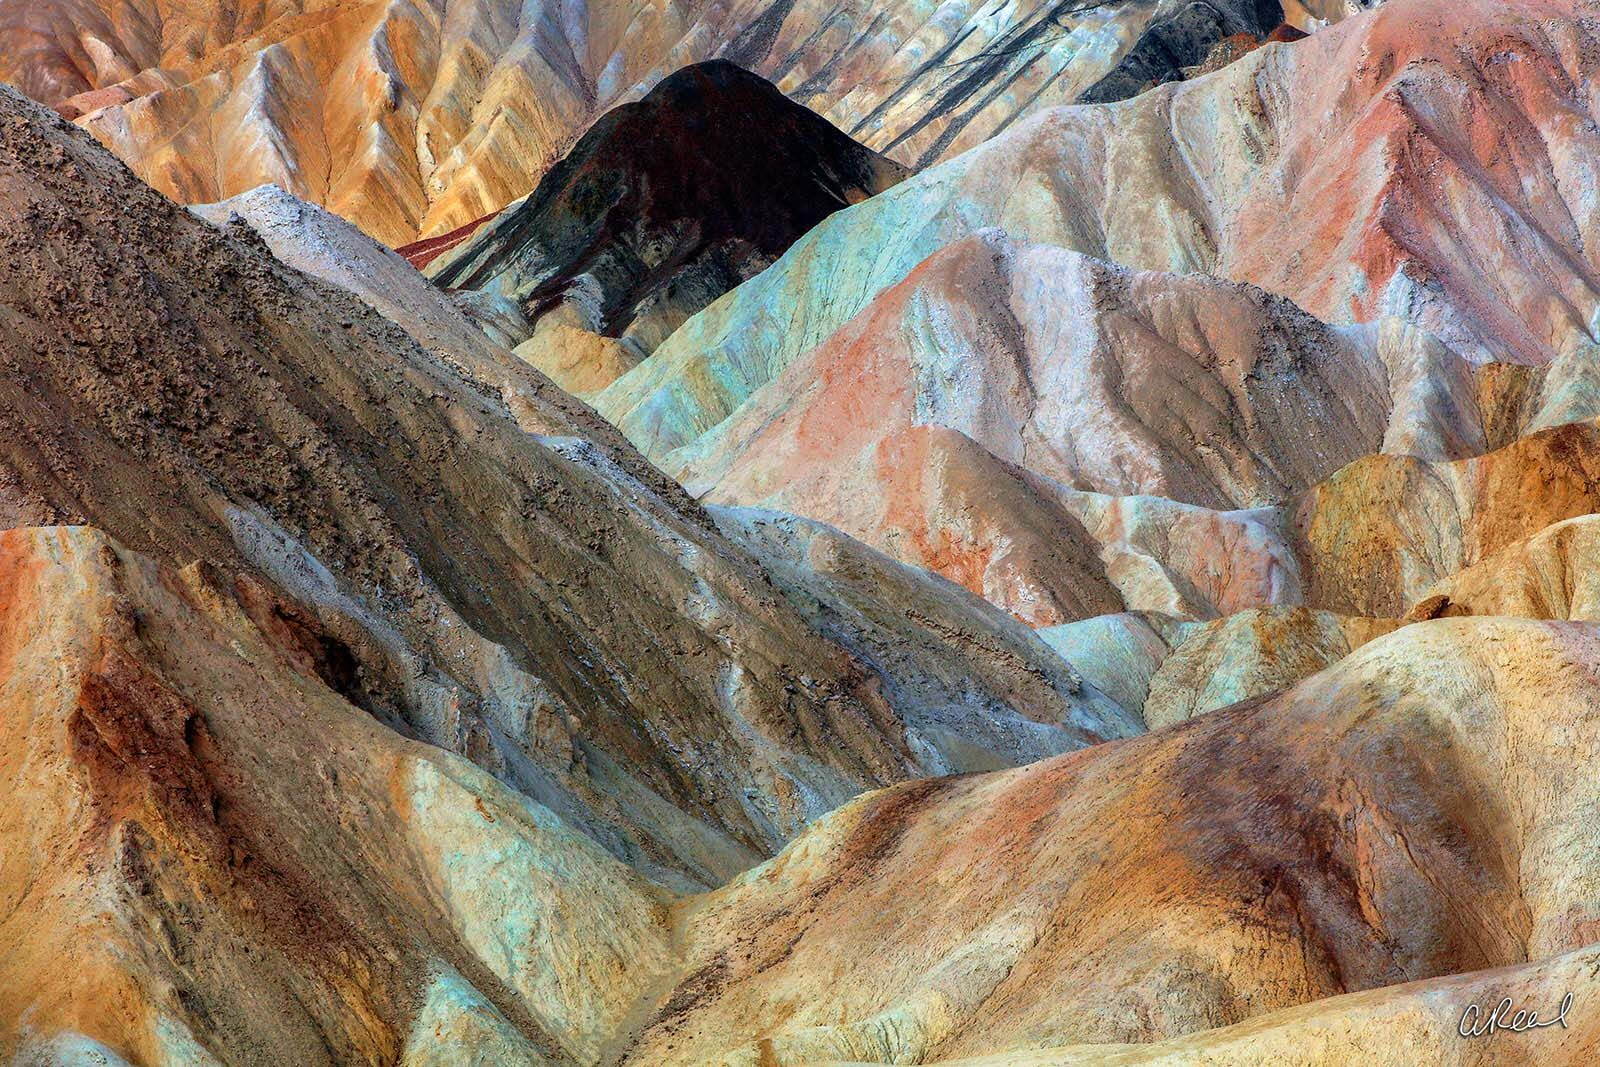 Death Valley, Fine Art, Limited Edition, Abstract, Zabriskie, California, Erosion, Sediment, Earth, National Park, , photo